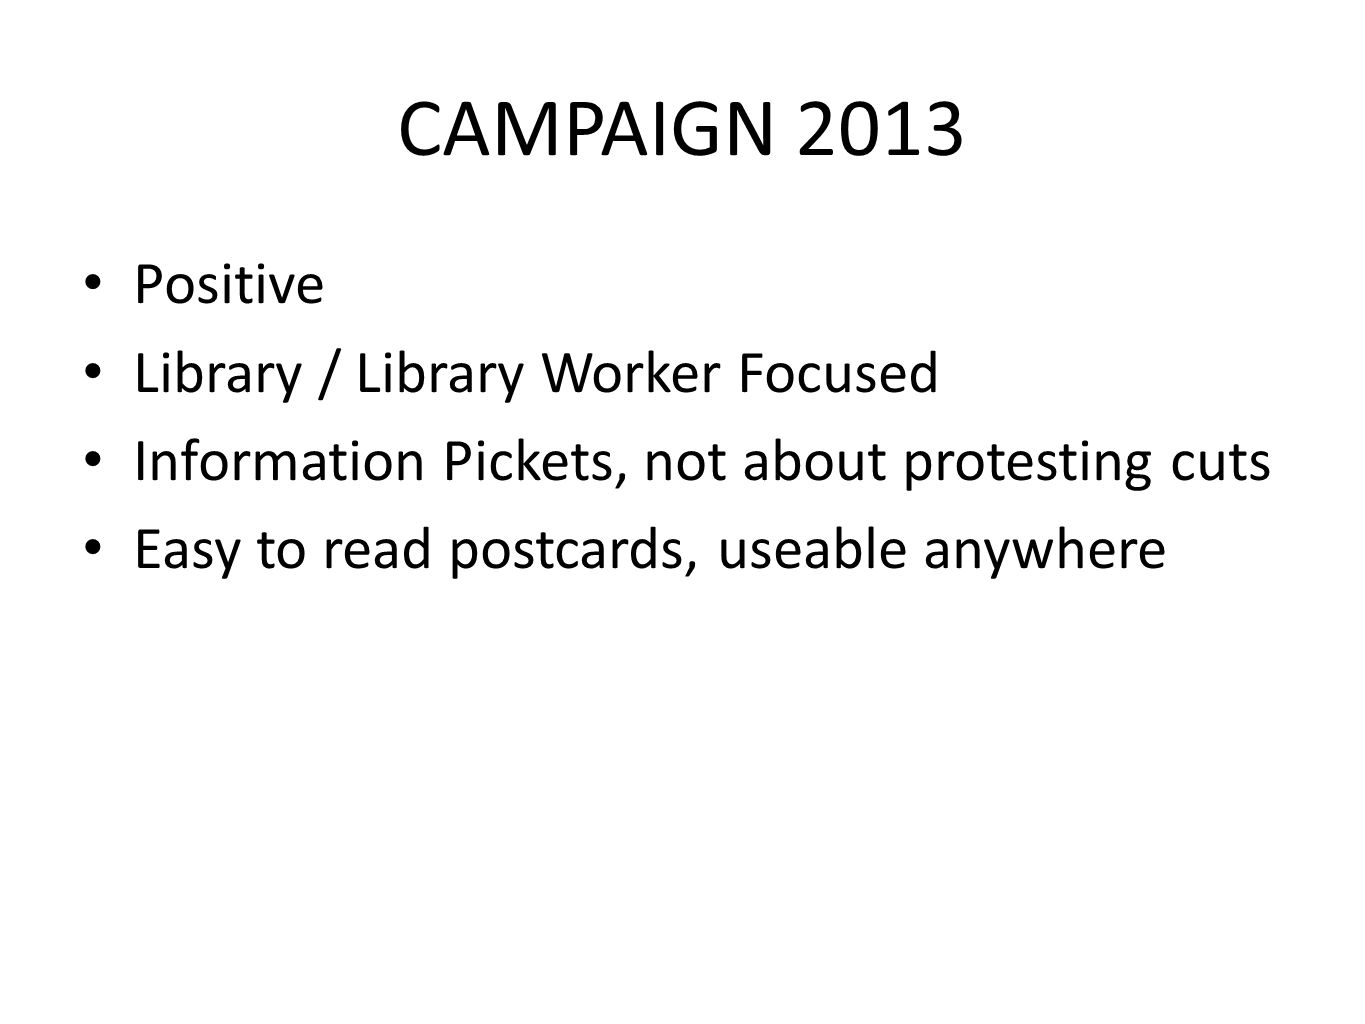 CAMPAIGN 2013 Positive Library / Library Worker Focused Information Pickets, not about protesting cuts Easy to read postcards, useable anywhere